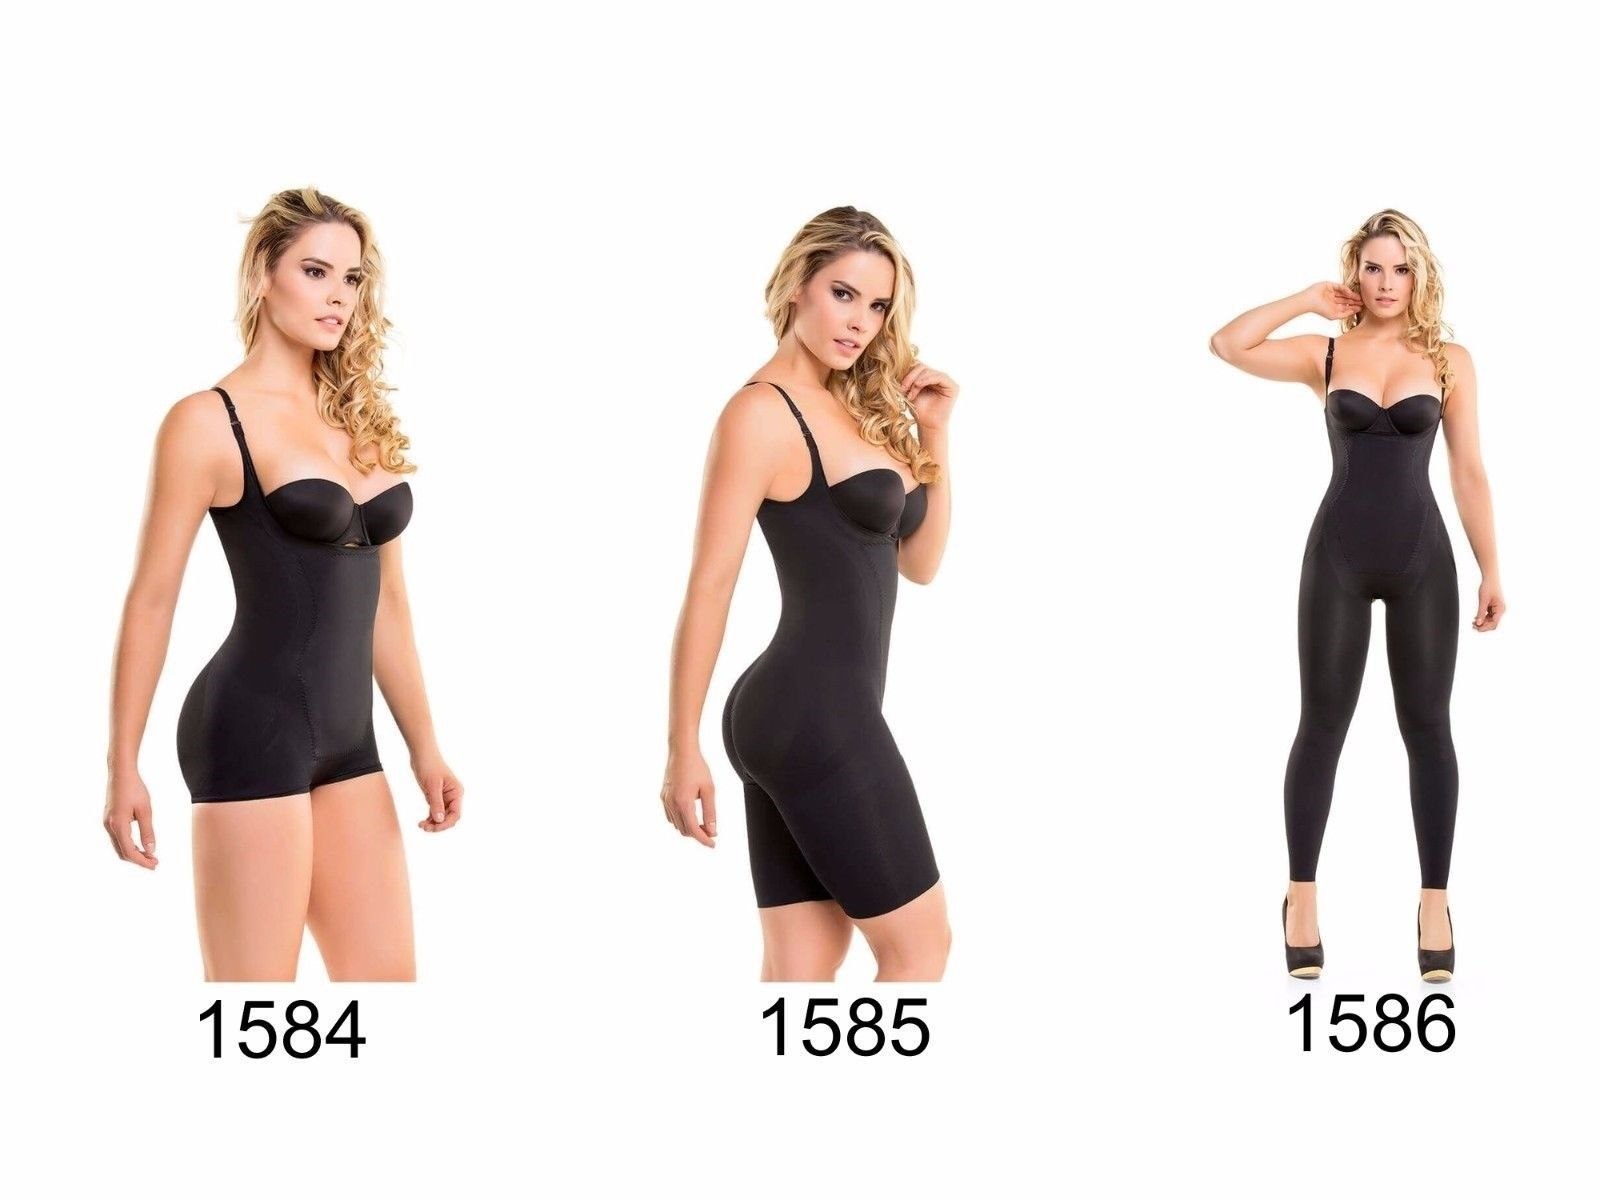 CYSM Fajate Thermal Body Shapers Seamless Microfiber 1584 1585 1586